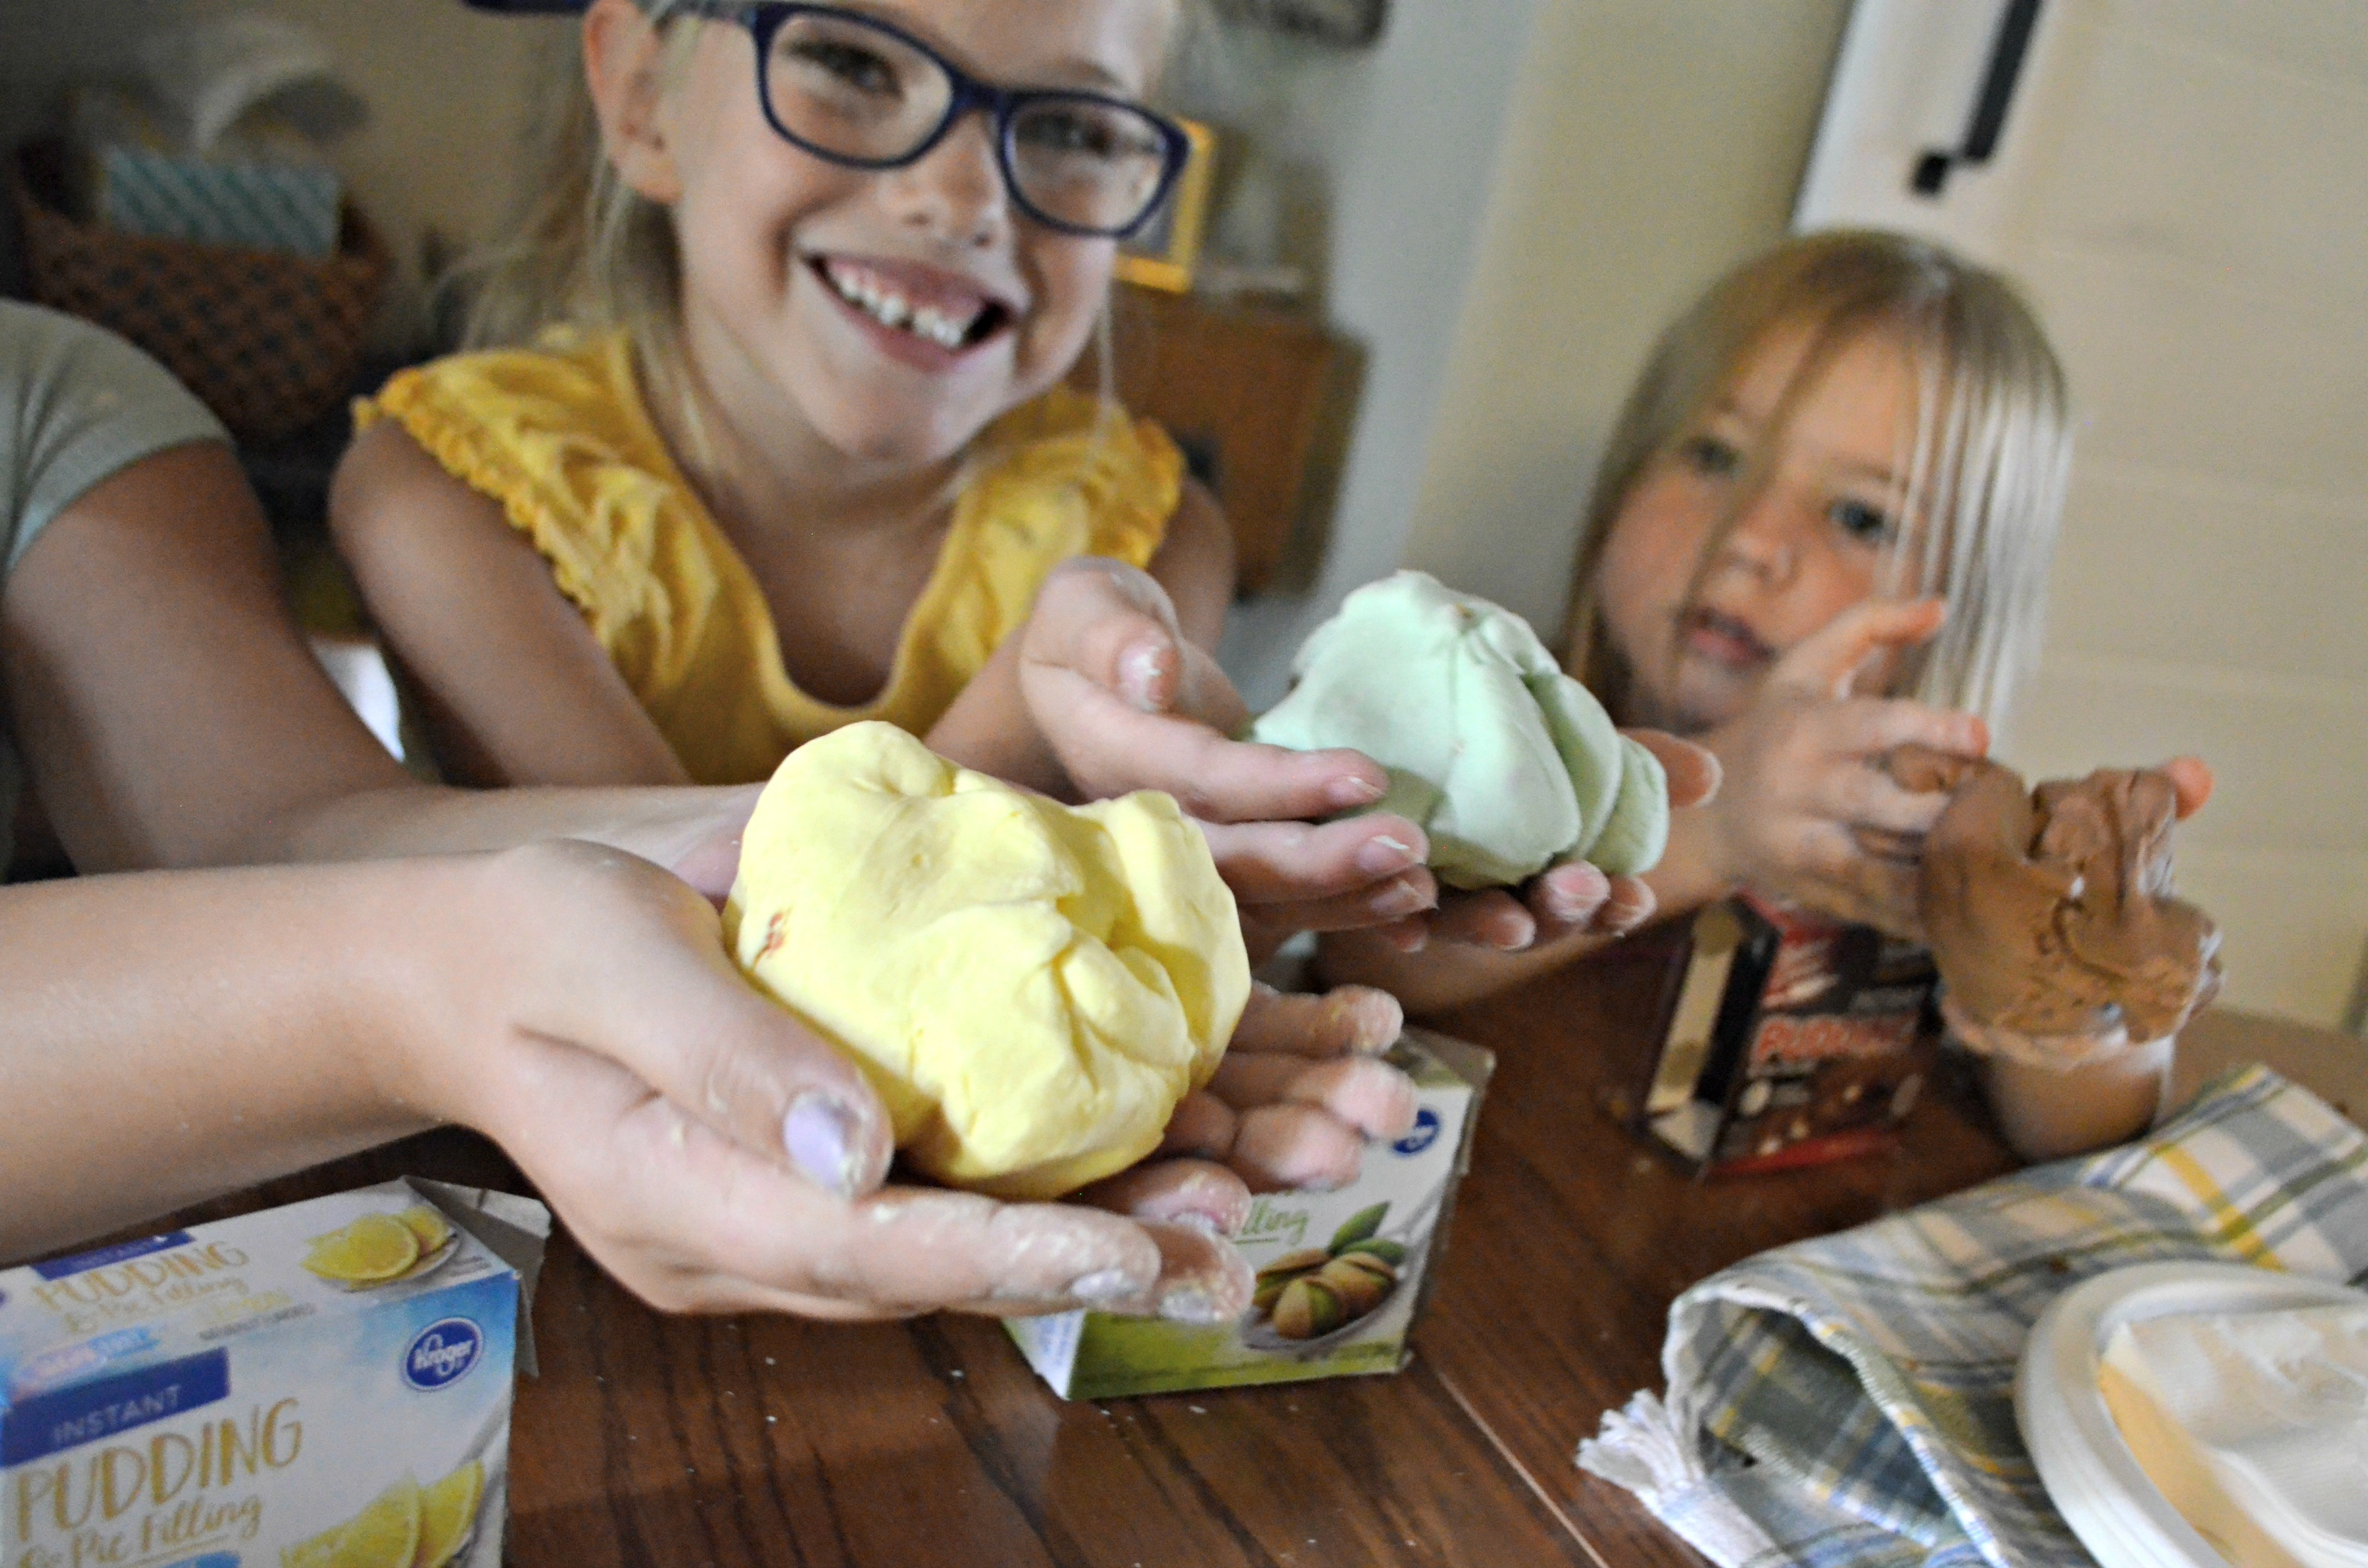 DIY play dough Pudding Slime – kids holding the slime in their hands